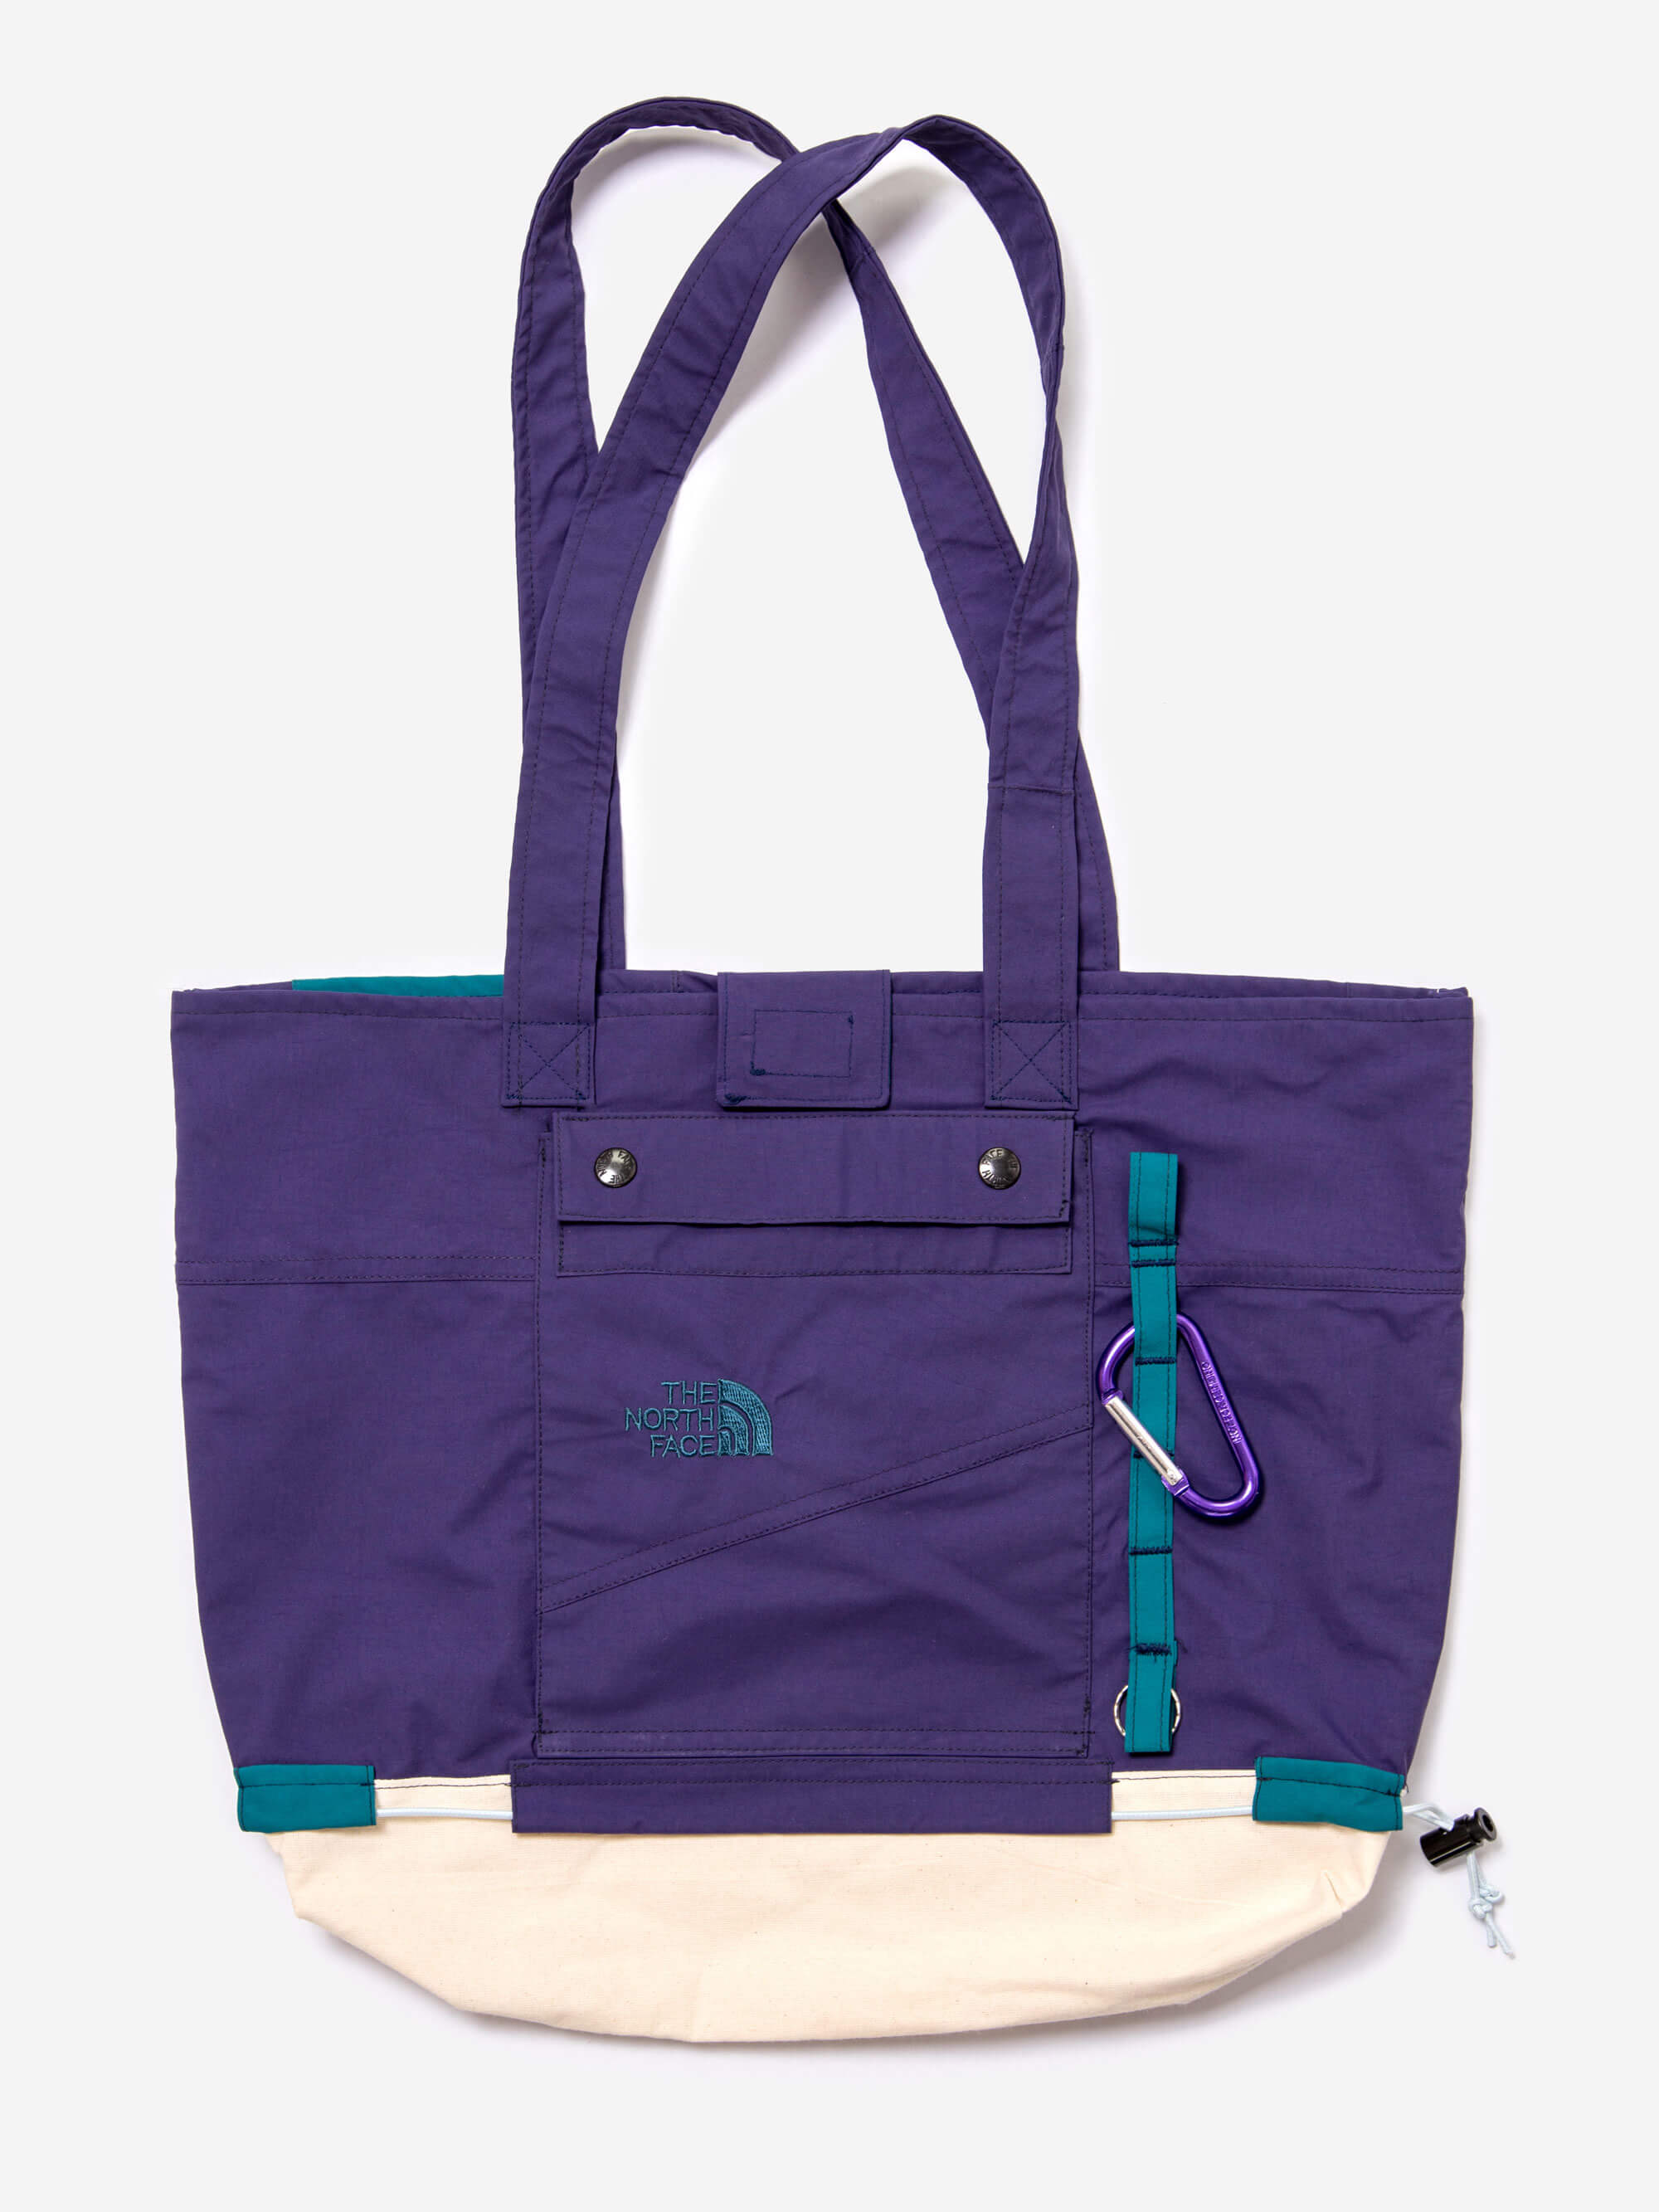 Greater-Goods-Fashion-Upcycling-North-Face-Bag-Purple